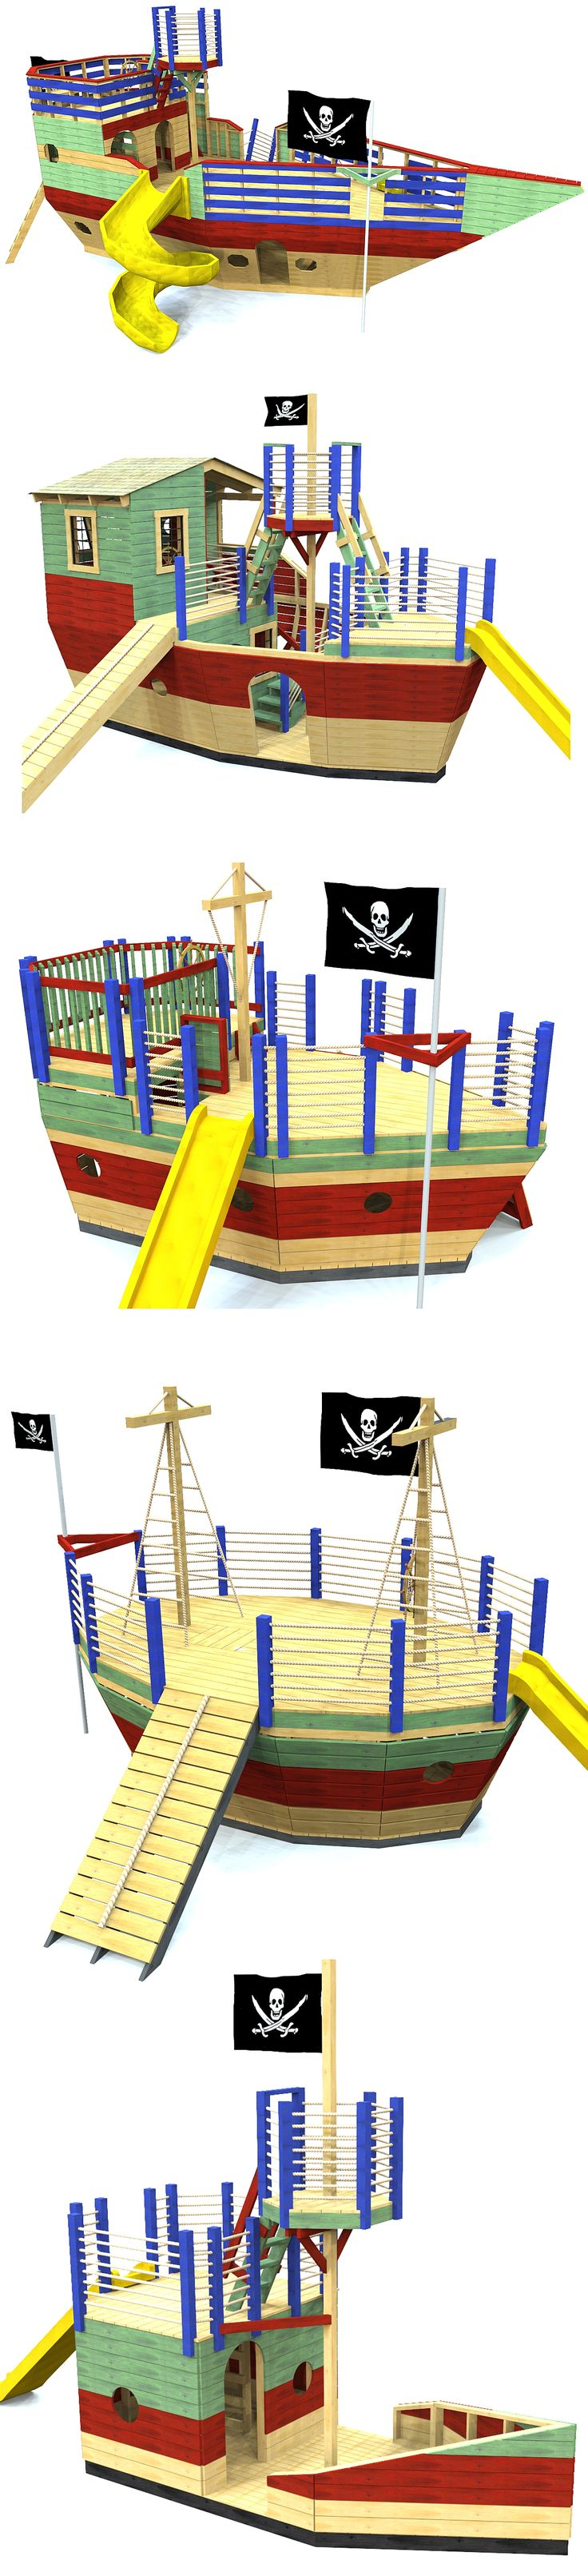 5 backyard pirate ship playhouse plans you can build.  Download and start building today!